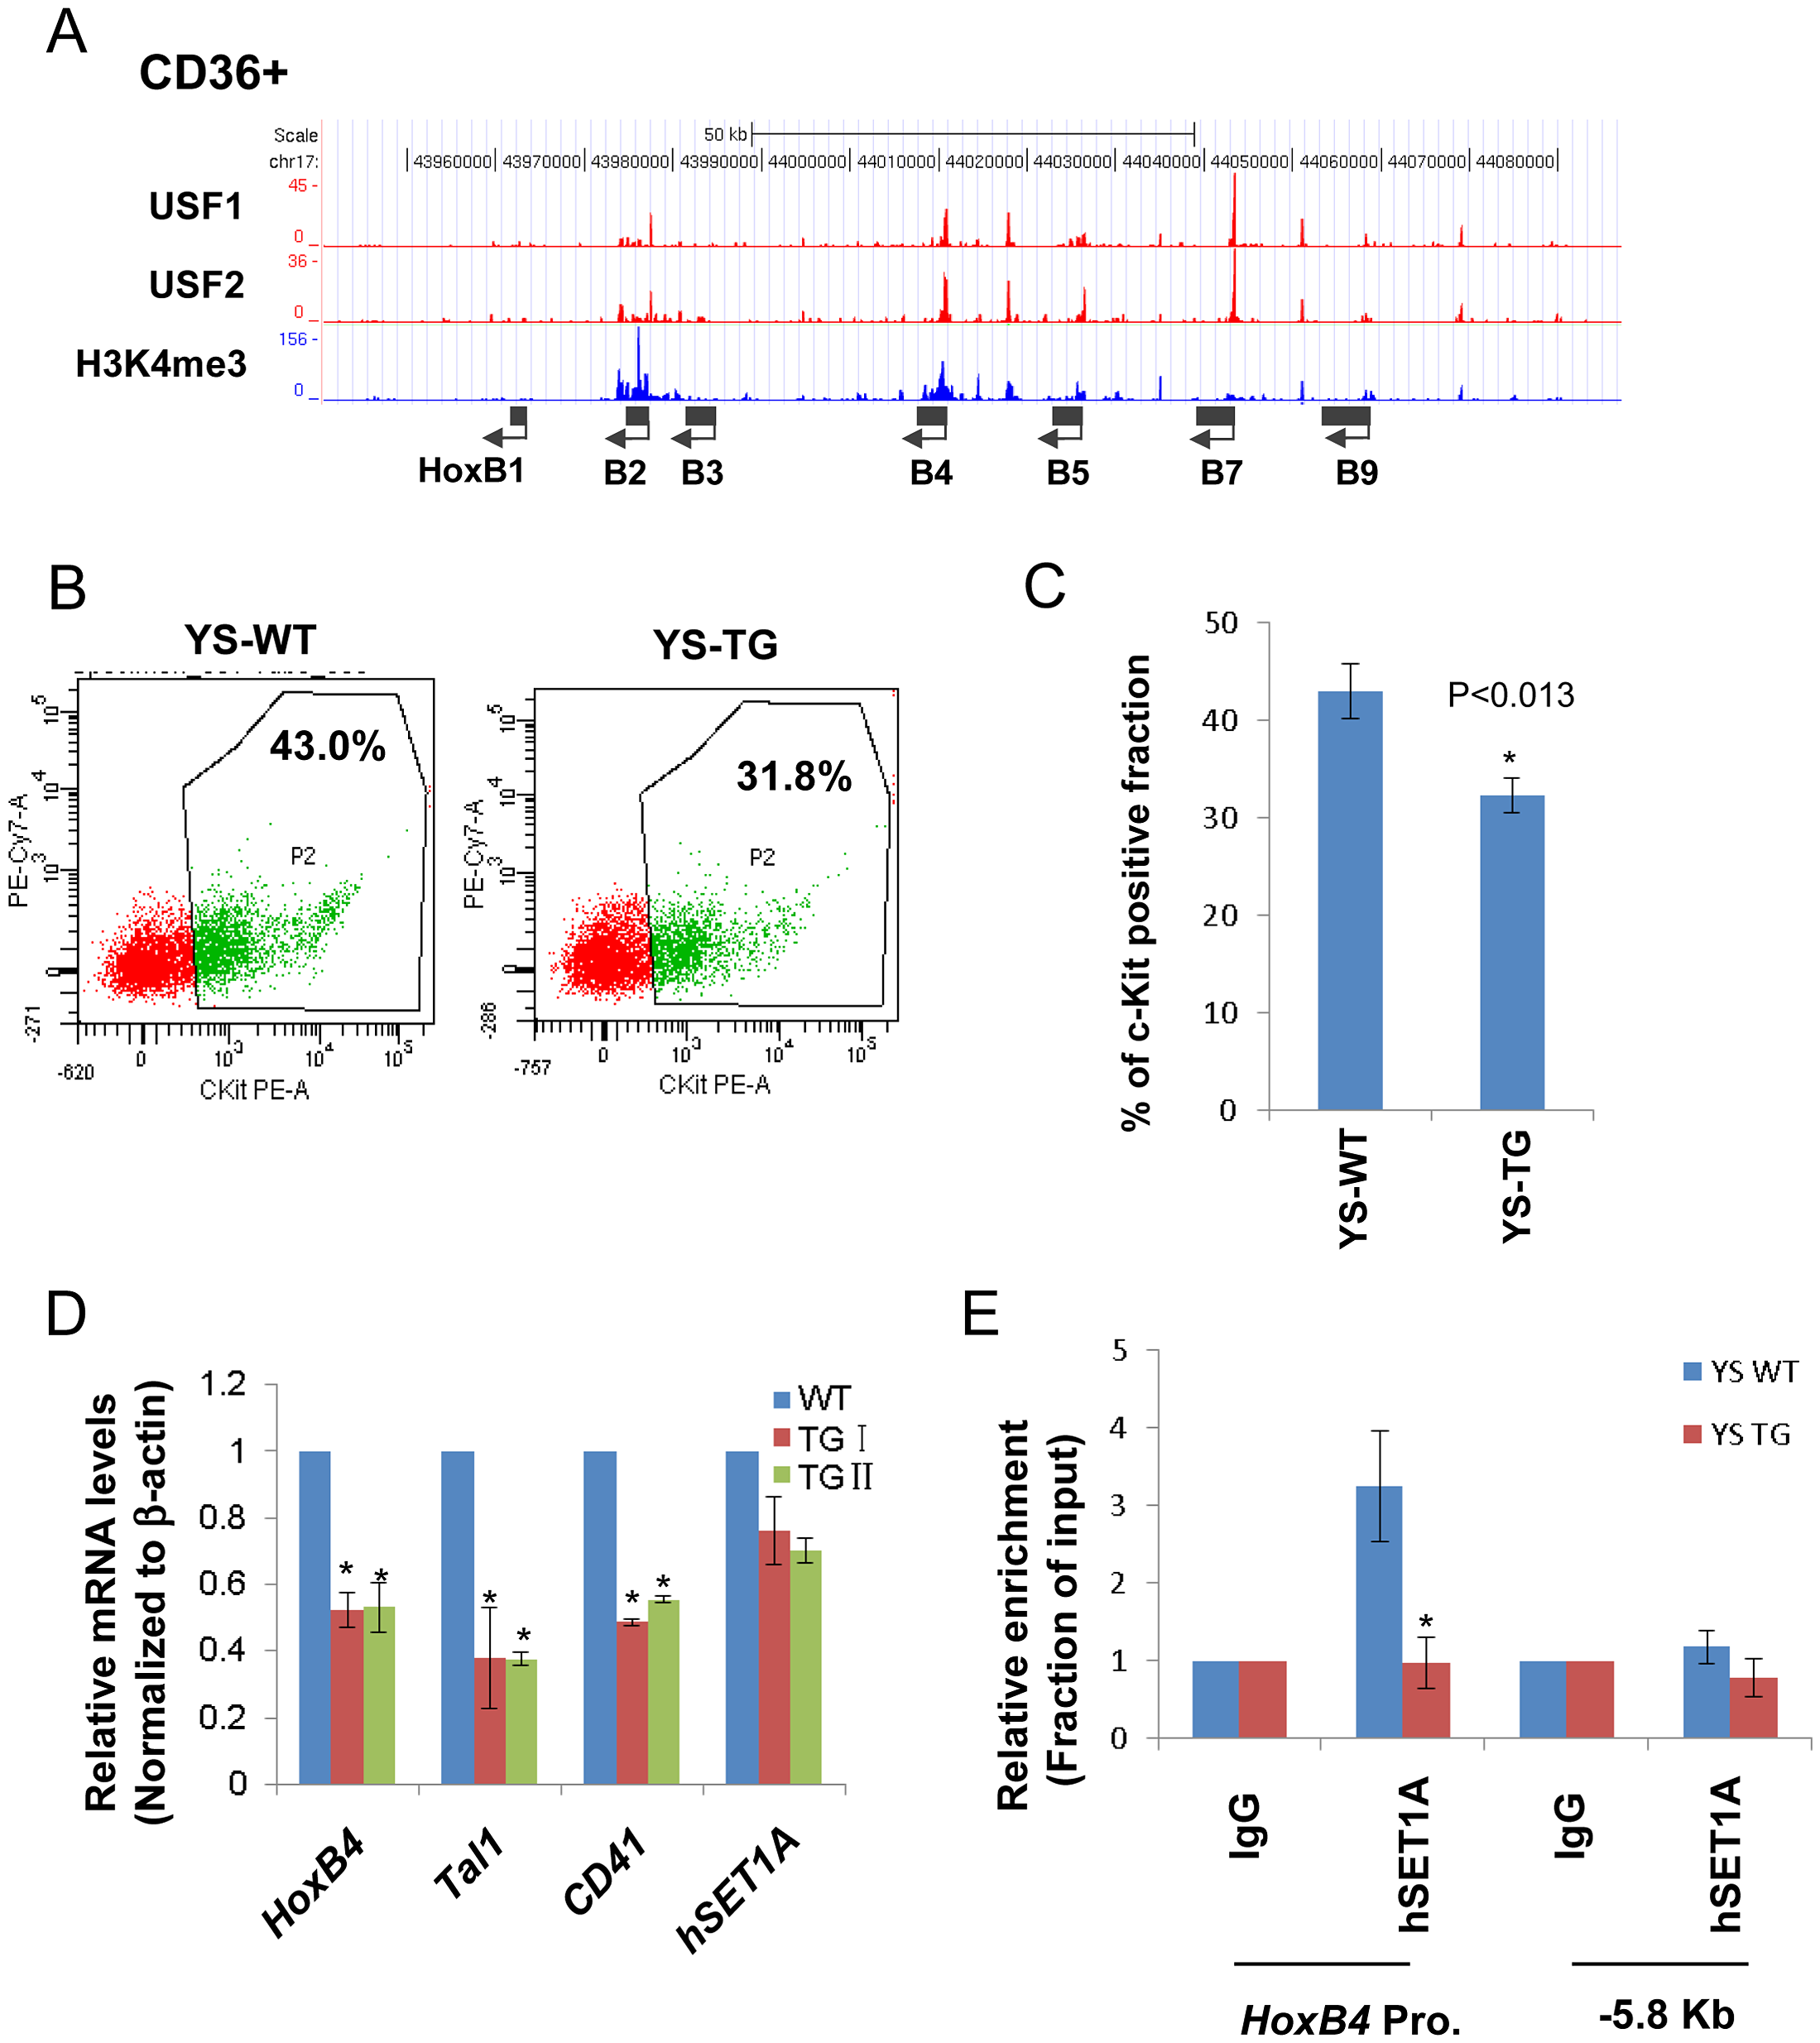 USF1 is responsible for the recruitment of the hSET1A complex and transcriptional activation of <i>HoxB4</i> during hematopoiesis.